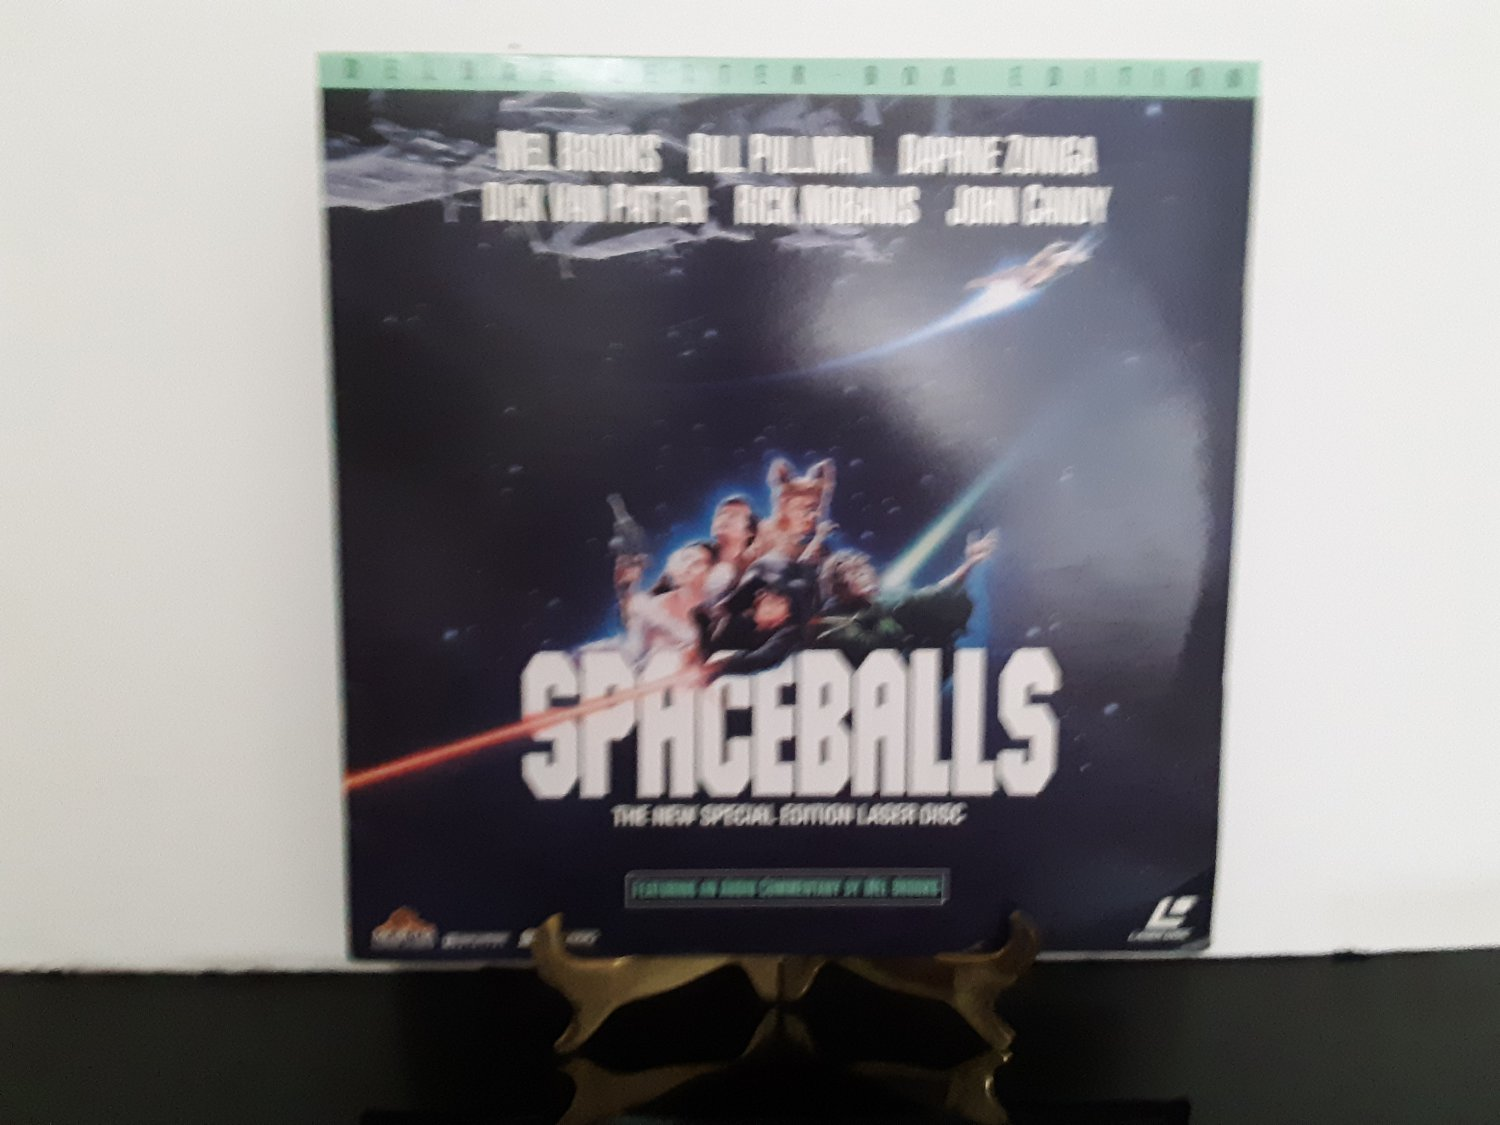 Ultra Rare Laserdisc  - Spaceballs - Widescreen Special Edition - With Audo Commentary by Mel Brooks